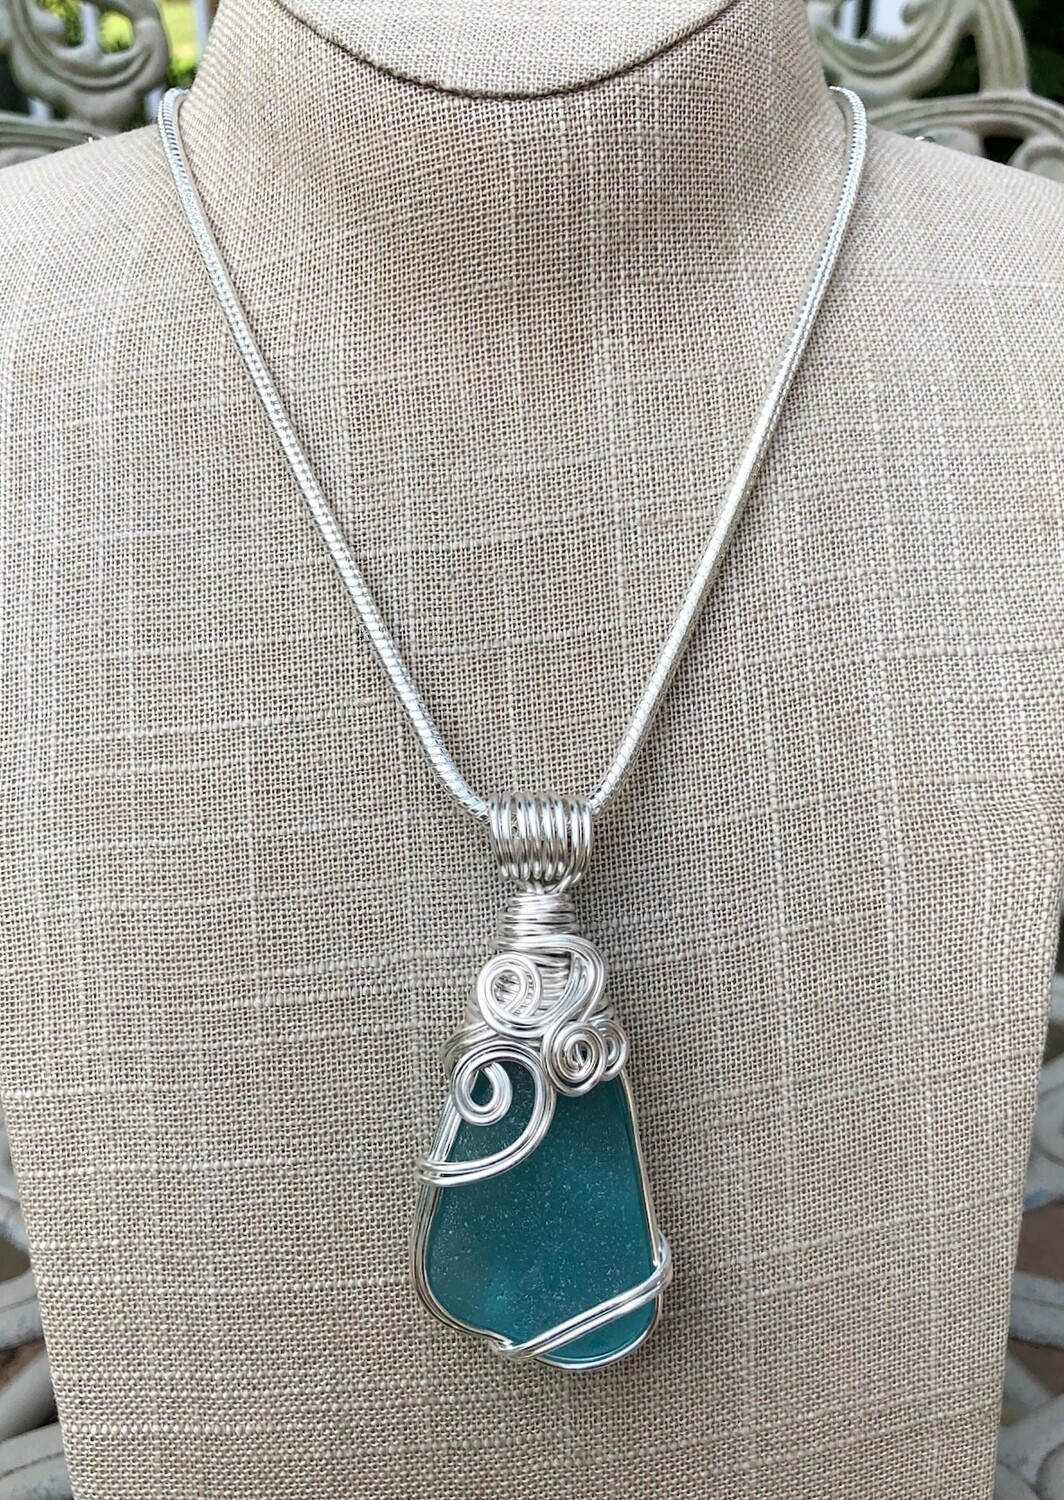 Brilliant Turquoise Sea Glass Pendant Necklace